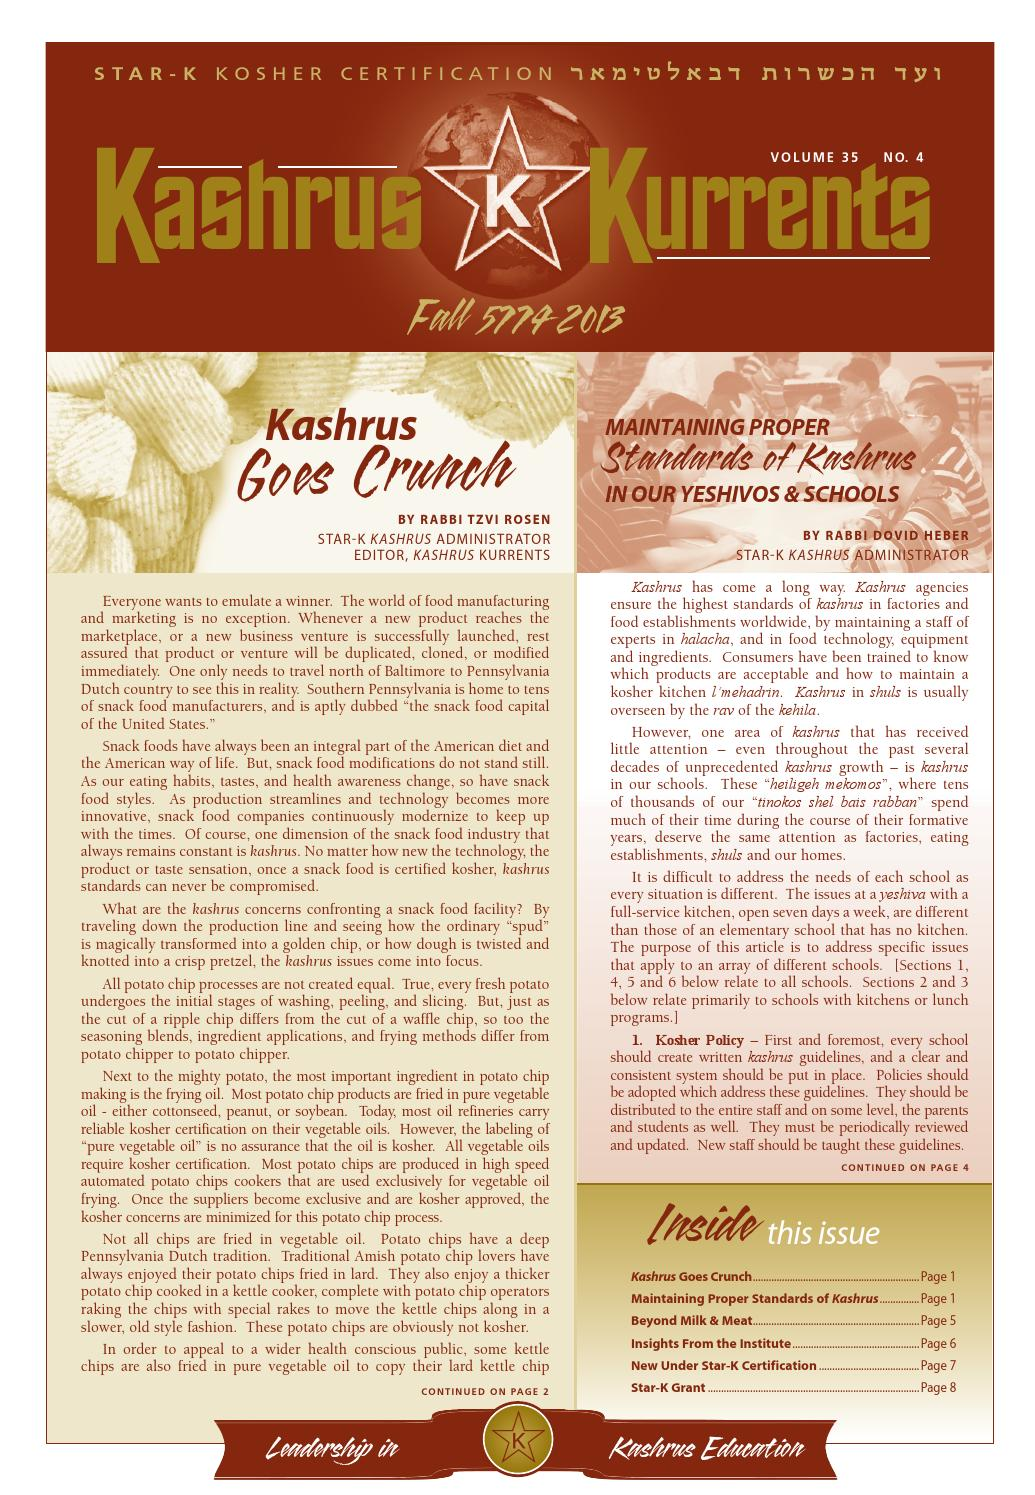 Kashrus kurrents fall 2013 by star k kosher issuu biocorpaavc Gallery